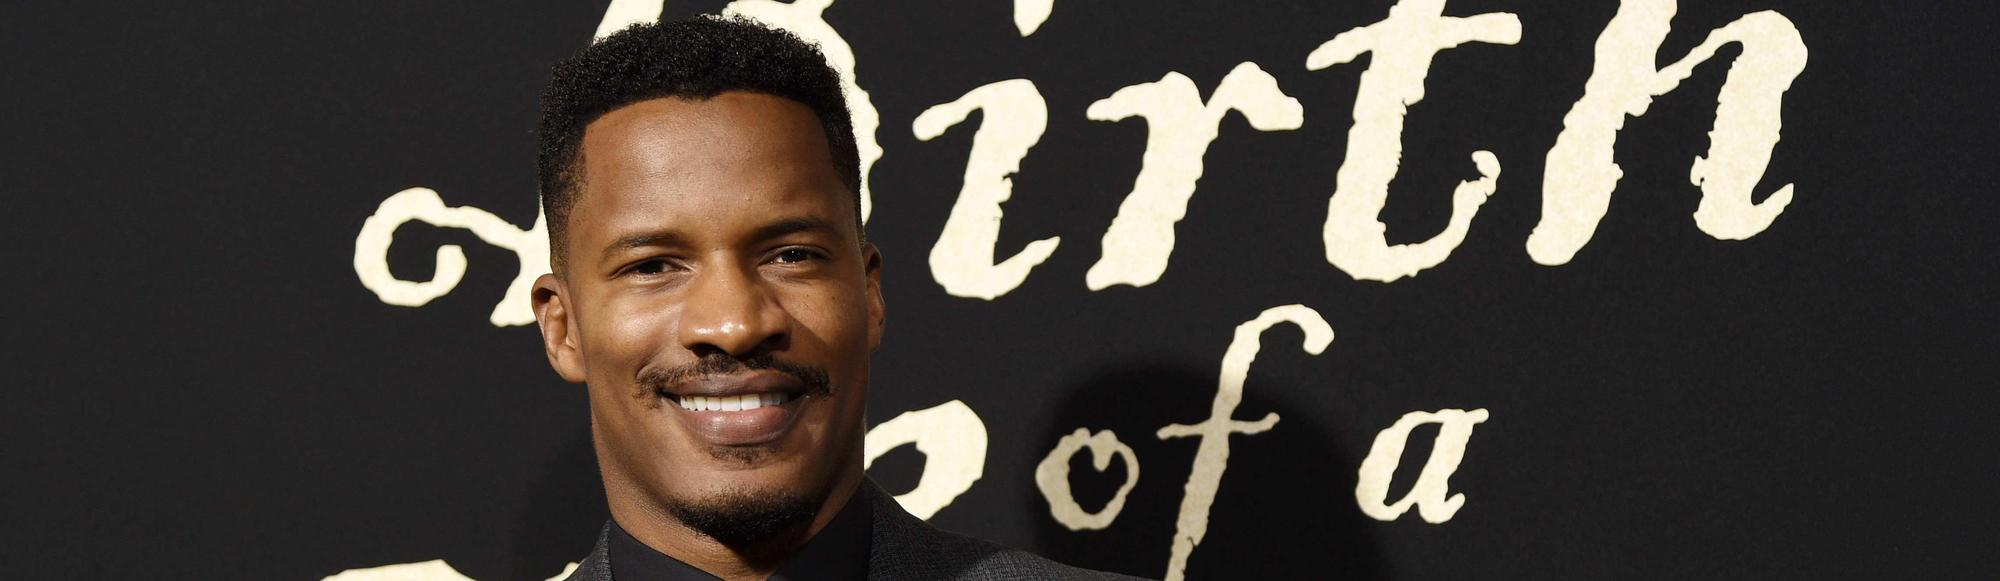 Nate Parker's controversial past probably won't affect success of 'Birth of a Nation'